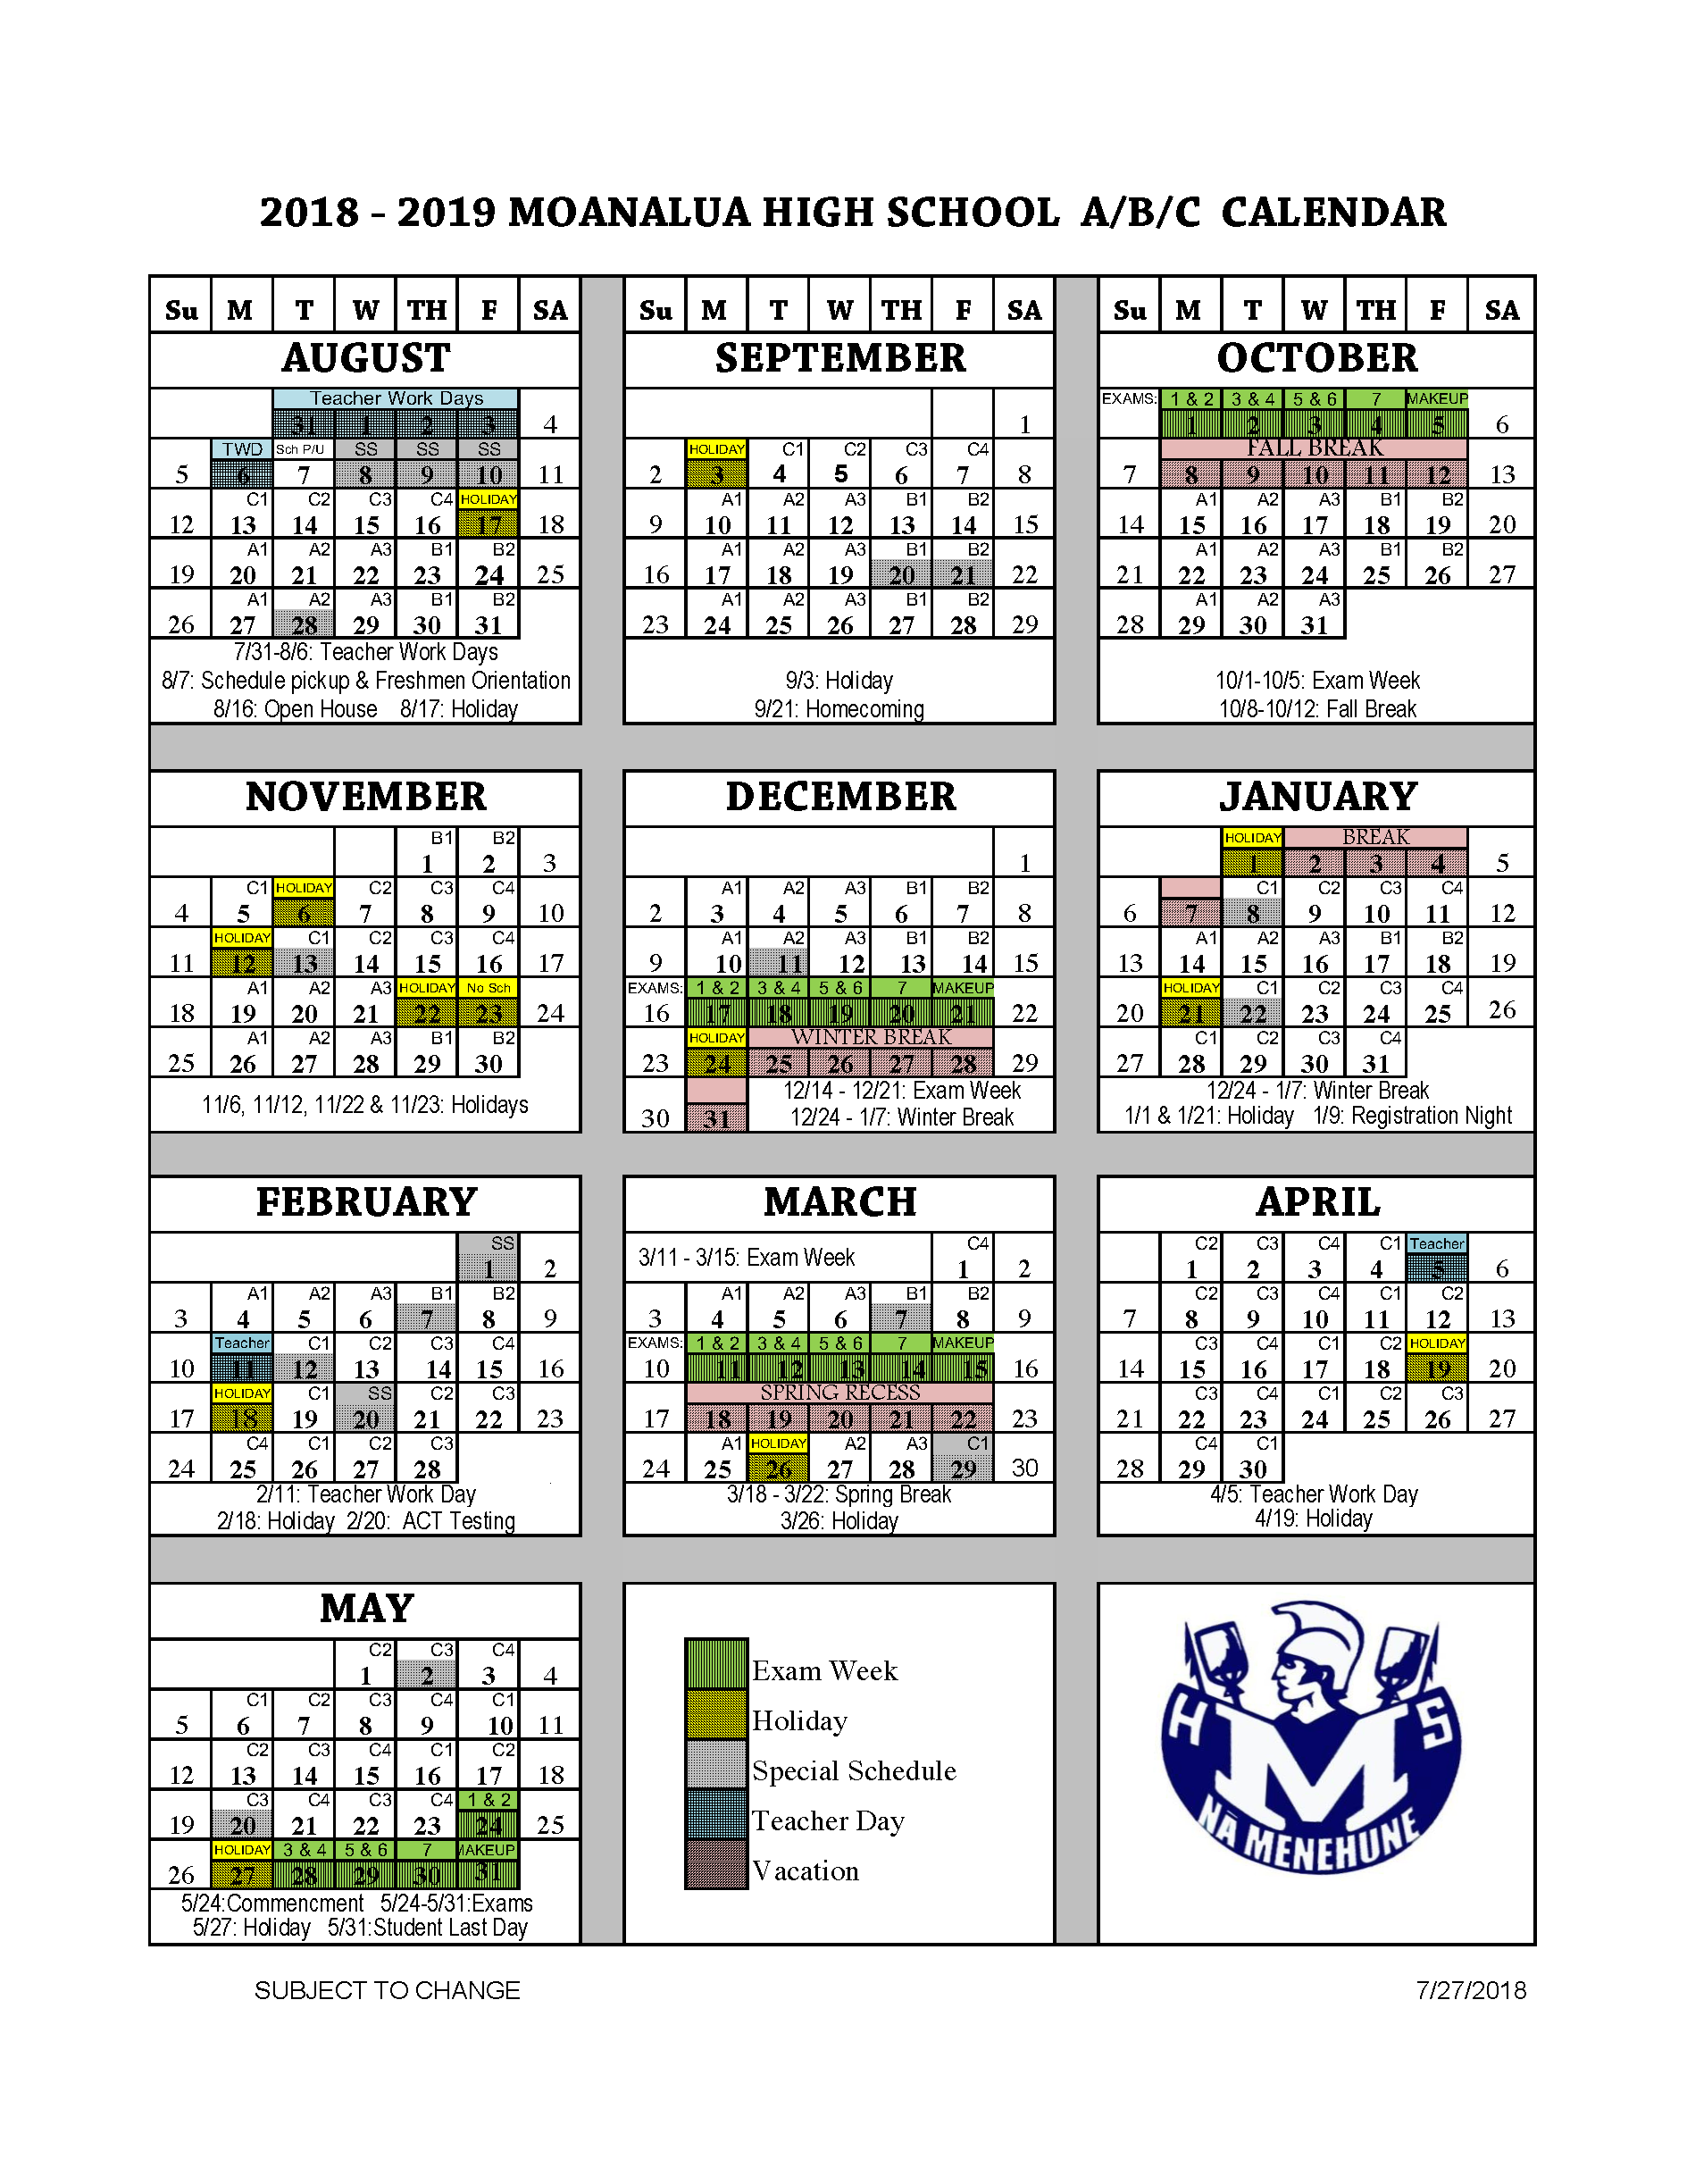 Military Fiscal Year 2019 Calendar With School A B C Parents Moanalua High